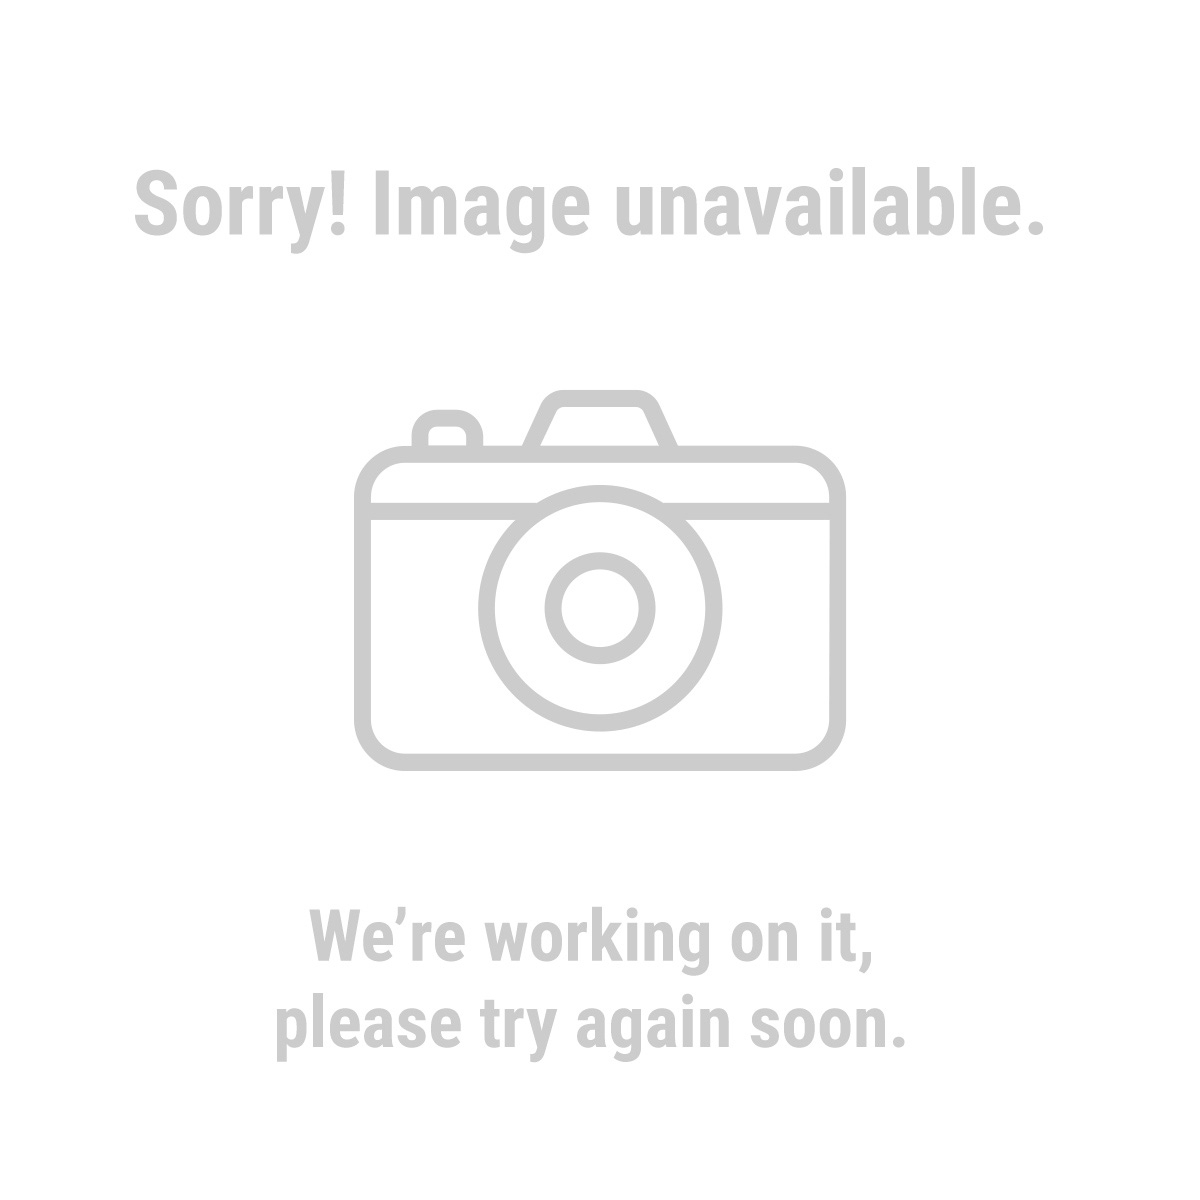 62220 Automatic Wrist Blood Pressure Monitor